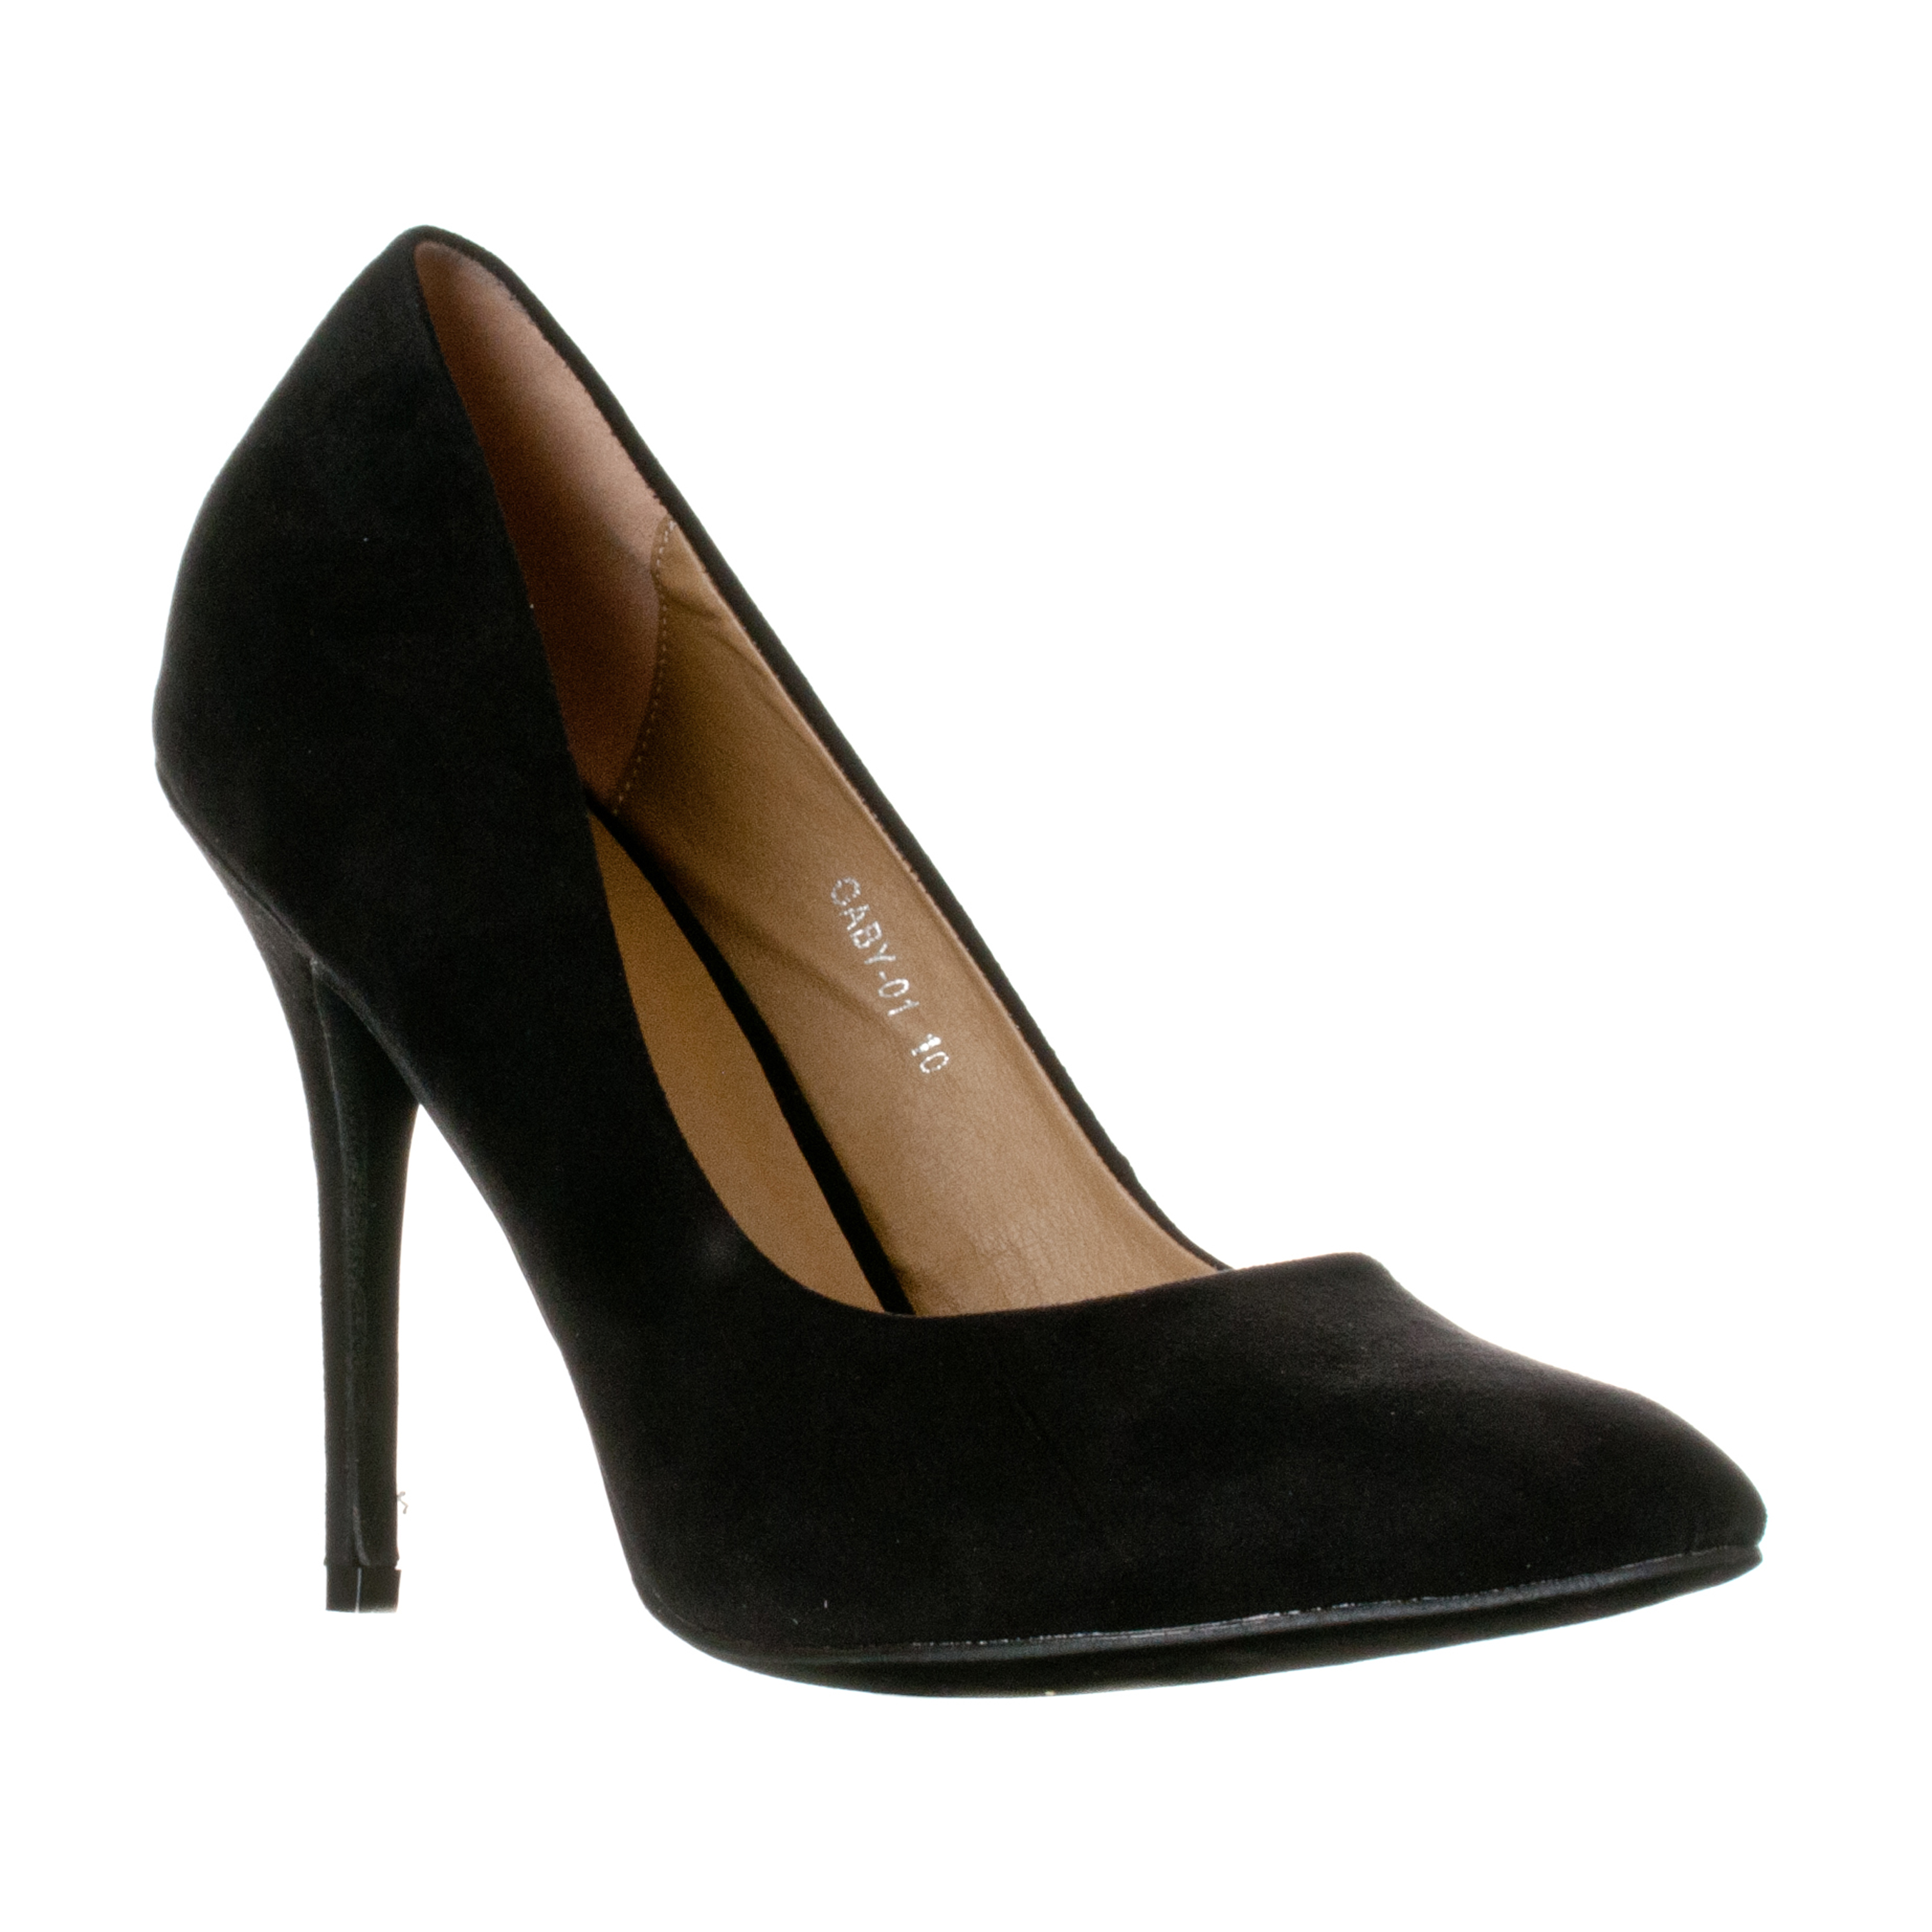 Riverberry Women's Gaby Pointed Closed Toe Stiletto Pump Heels, Black Suede, 9